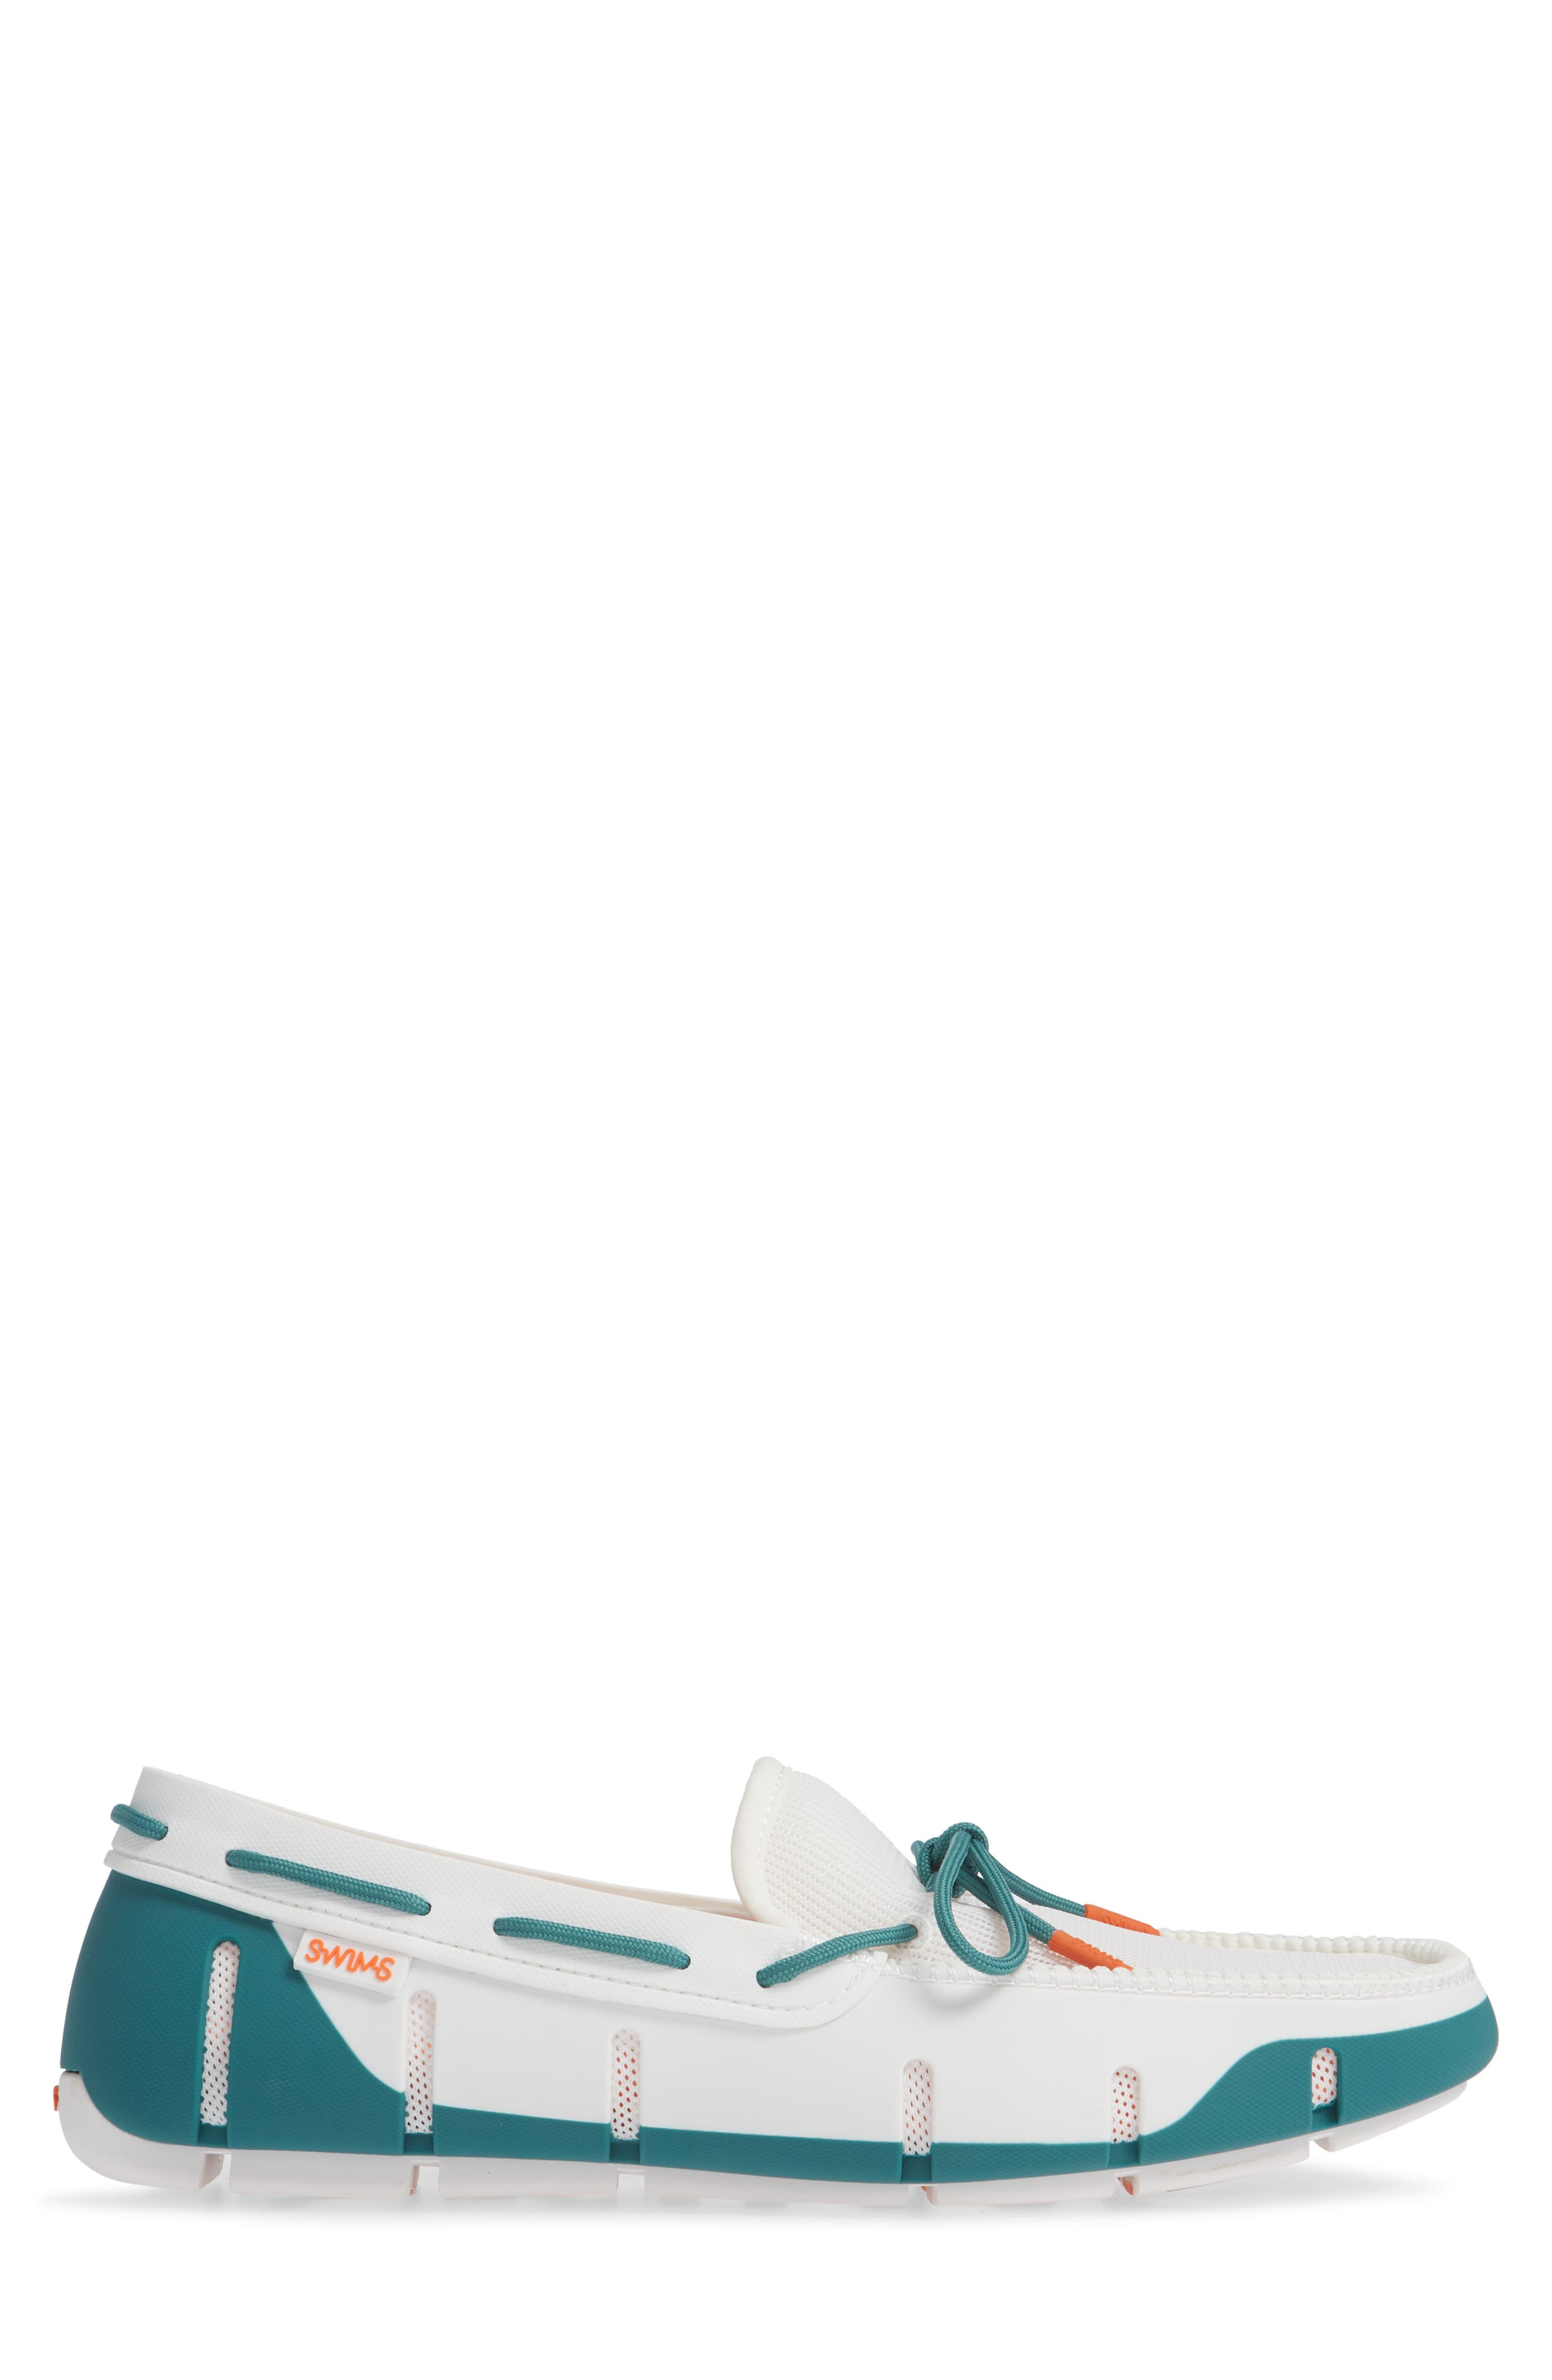 Stride Lace Loafer,                             Alternate thumbnail 3, color,                             WHITE/ TEAL